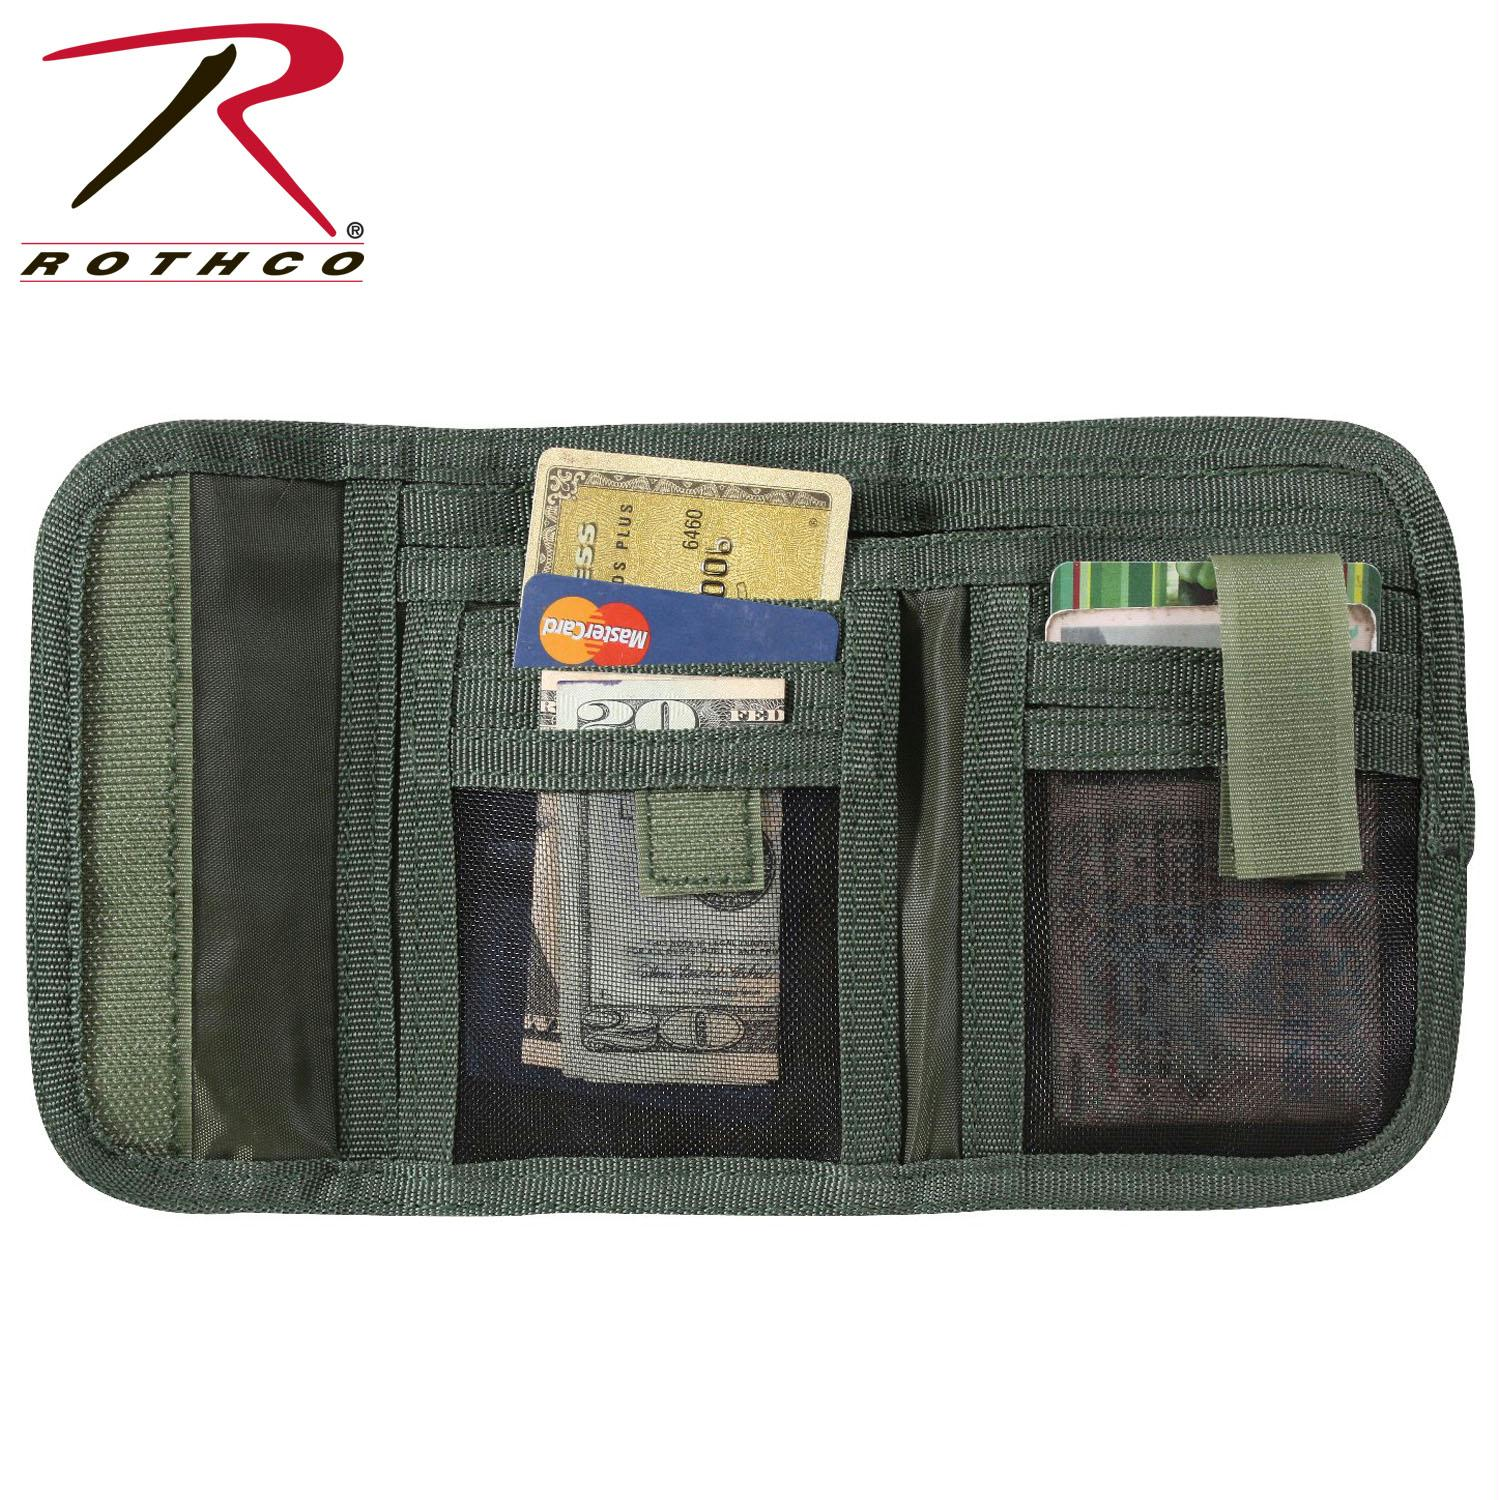 Rothco Deluxe Tri-Fold ID Wallet - Woodland Camo